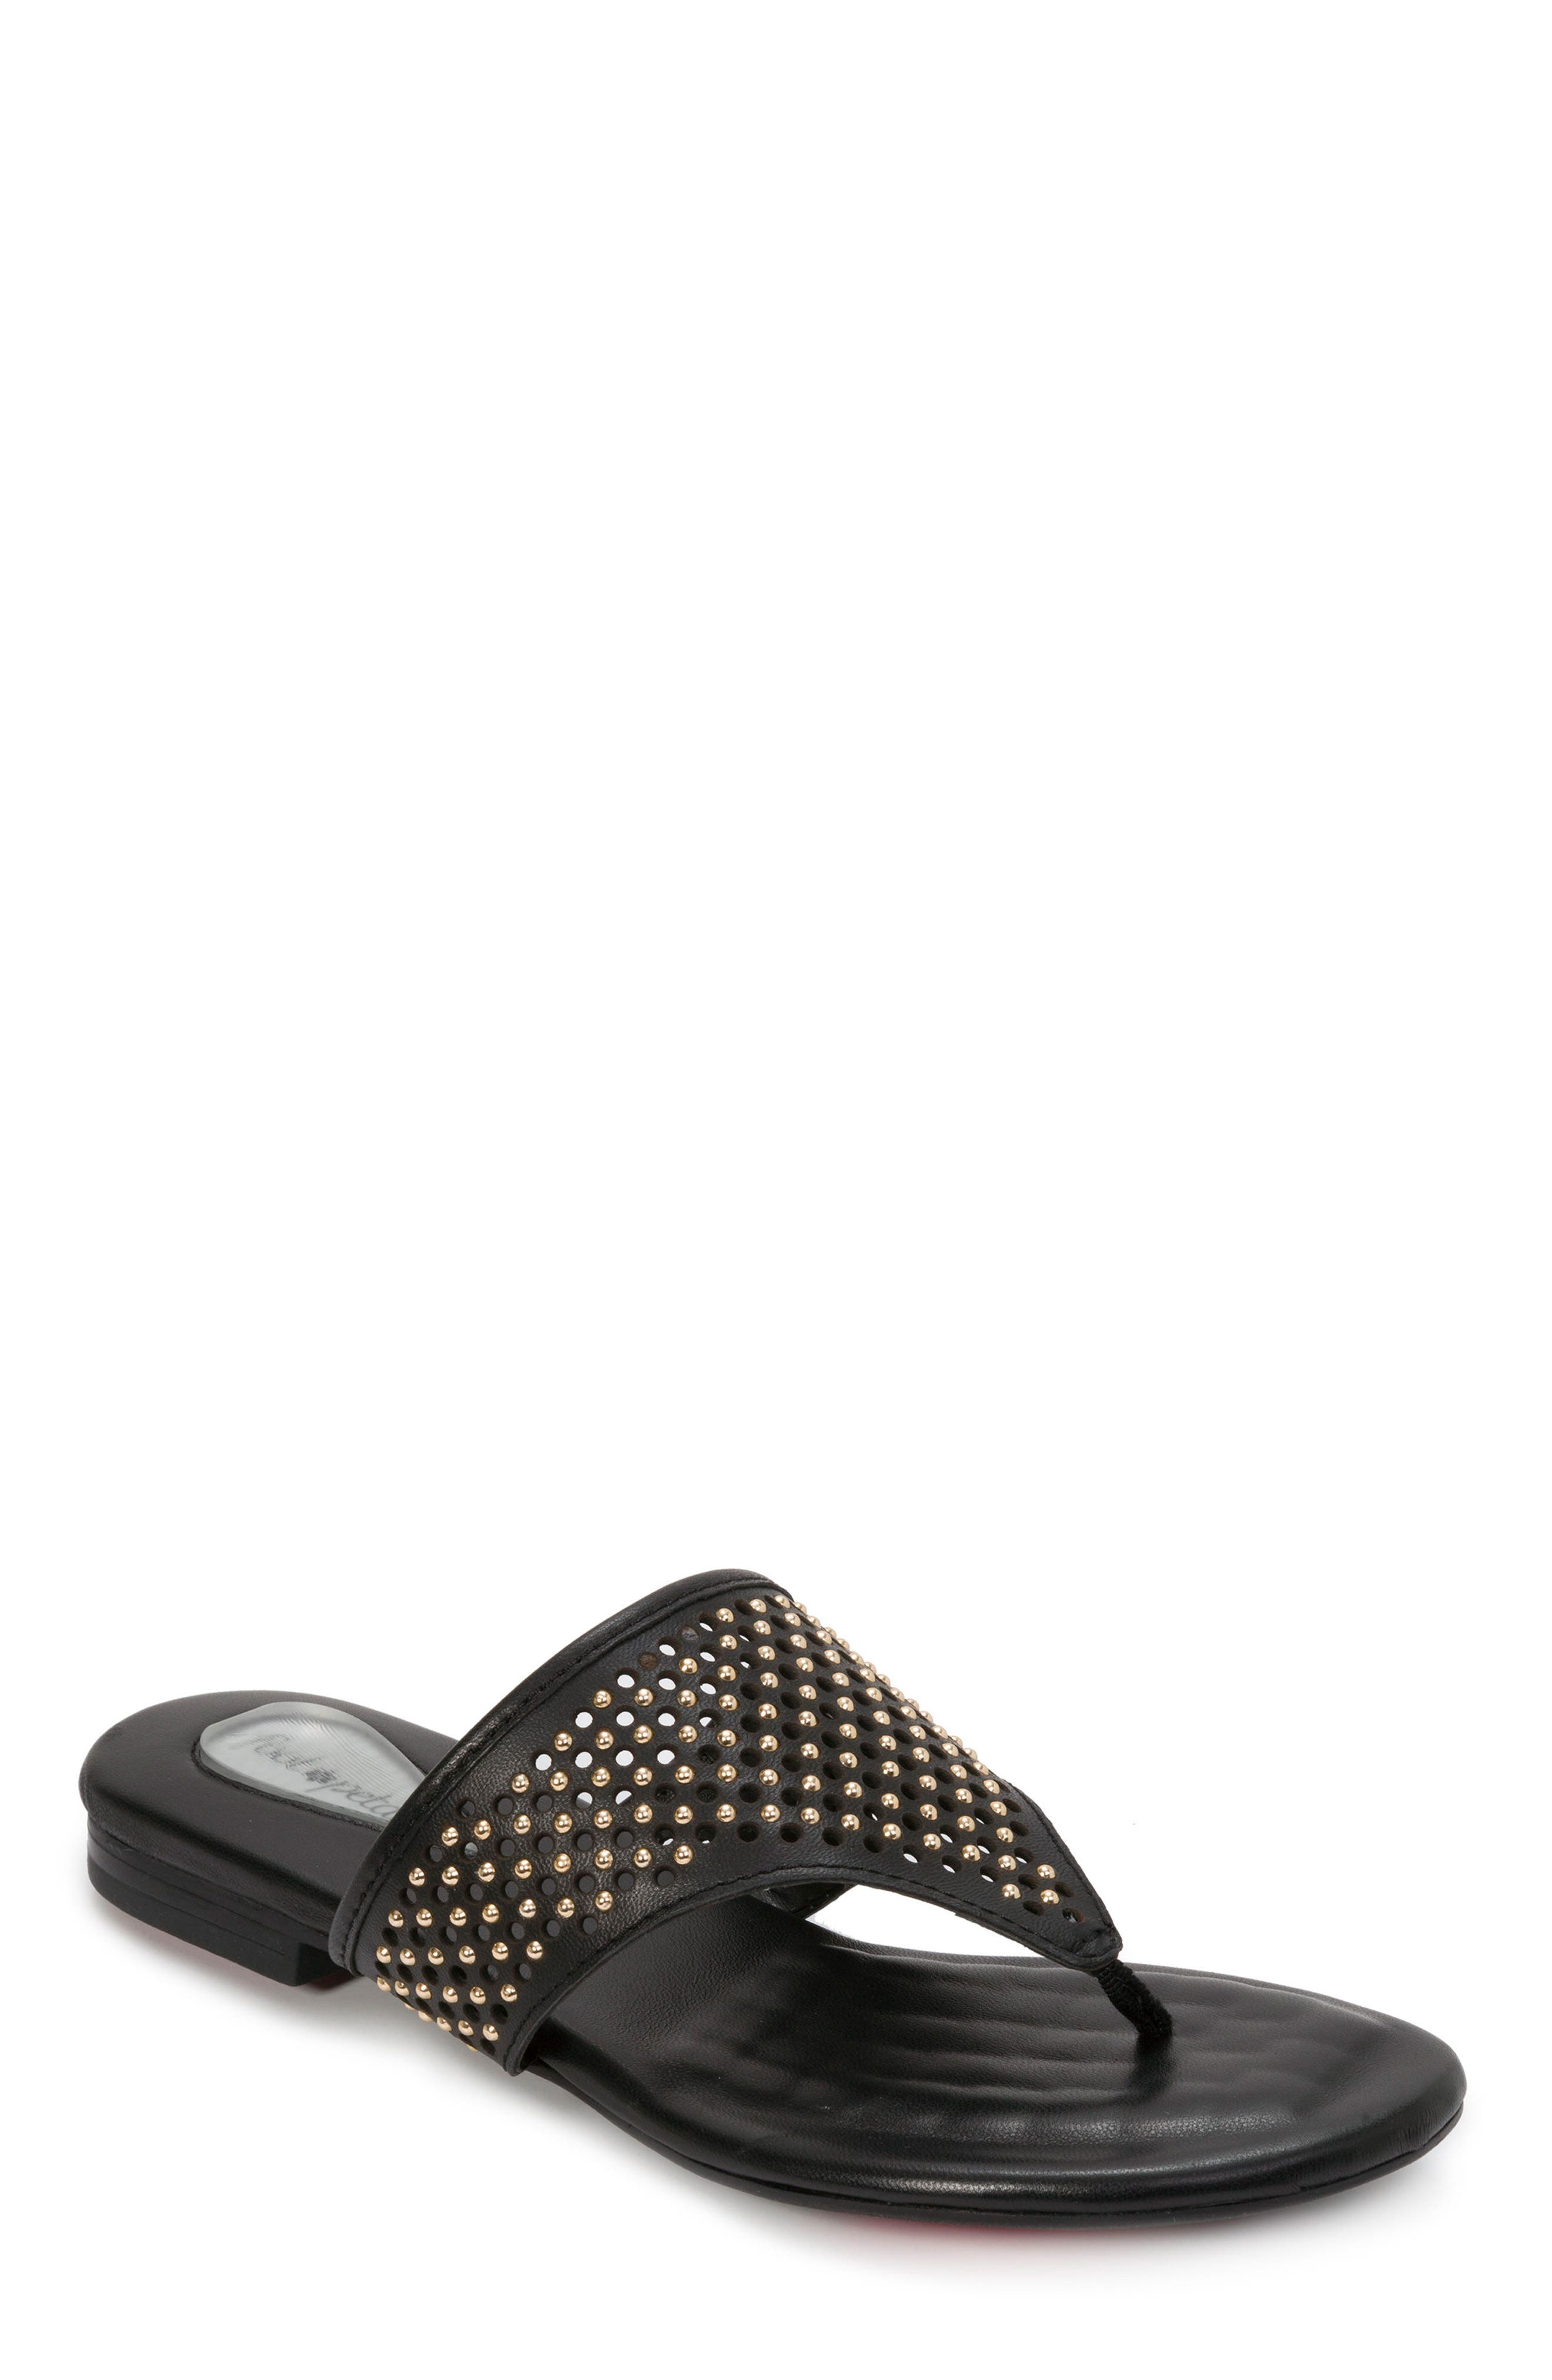 FOOT PETALS Evie Sandal in Black Leather